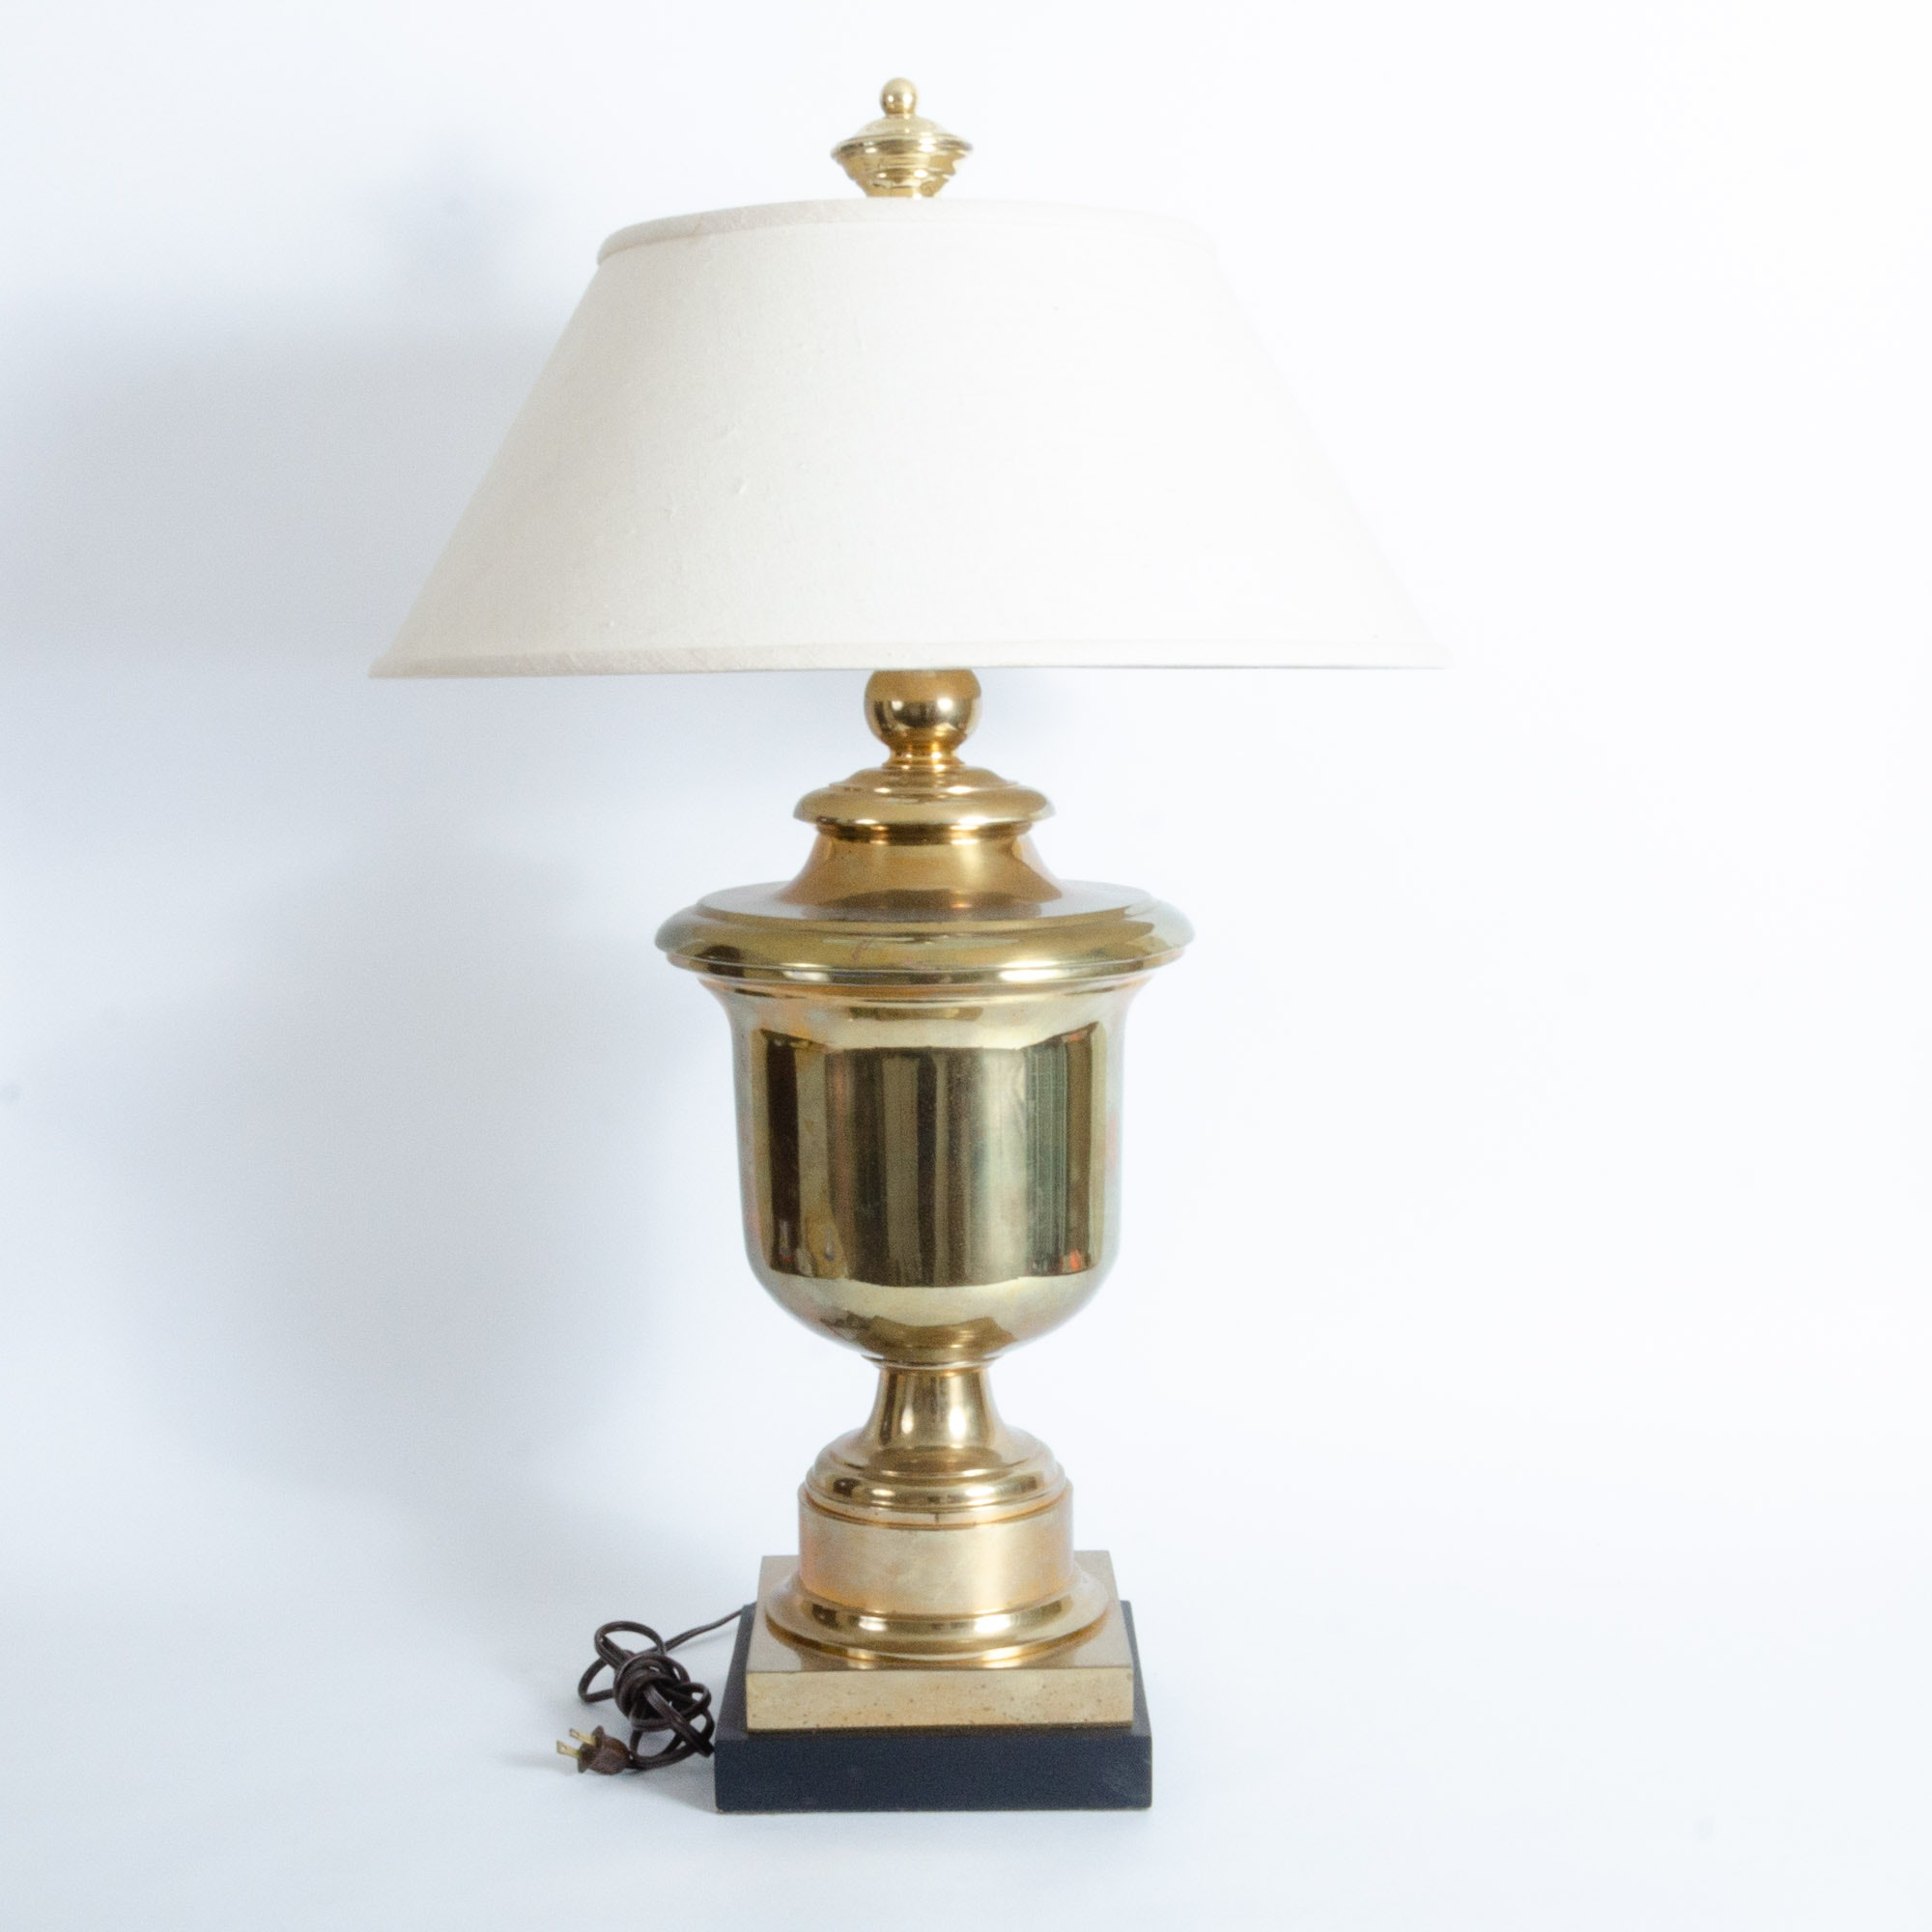 Vintage Brass Urn Table Lamp Attributed to Chapman